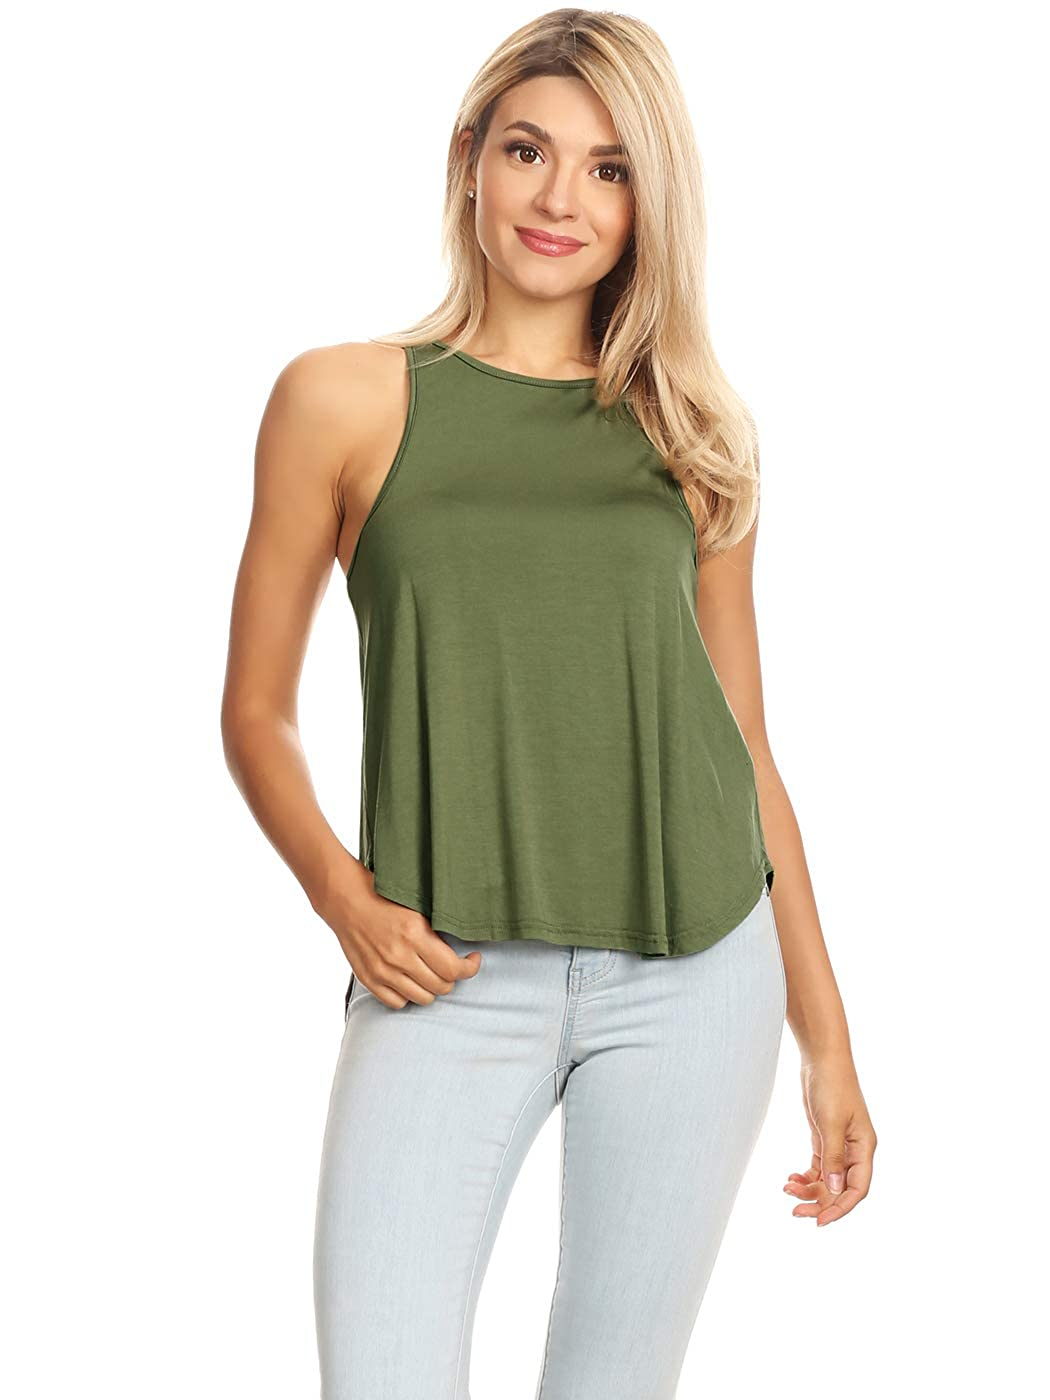 7740c36f84 Anna-Kaci Womens Loose Fit Solid Color High Round Neck Racerback Tank Top  at Amazon Women's Clothing store: